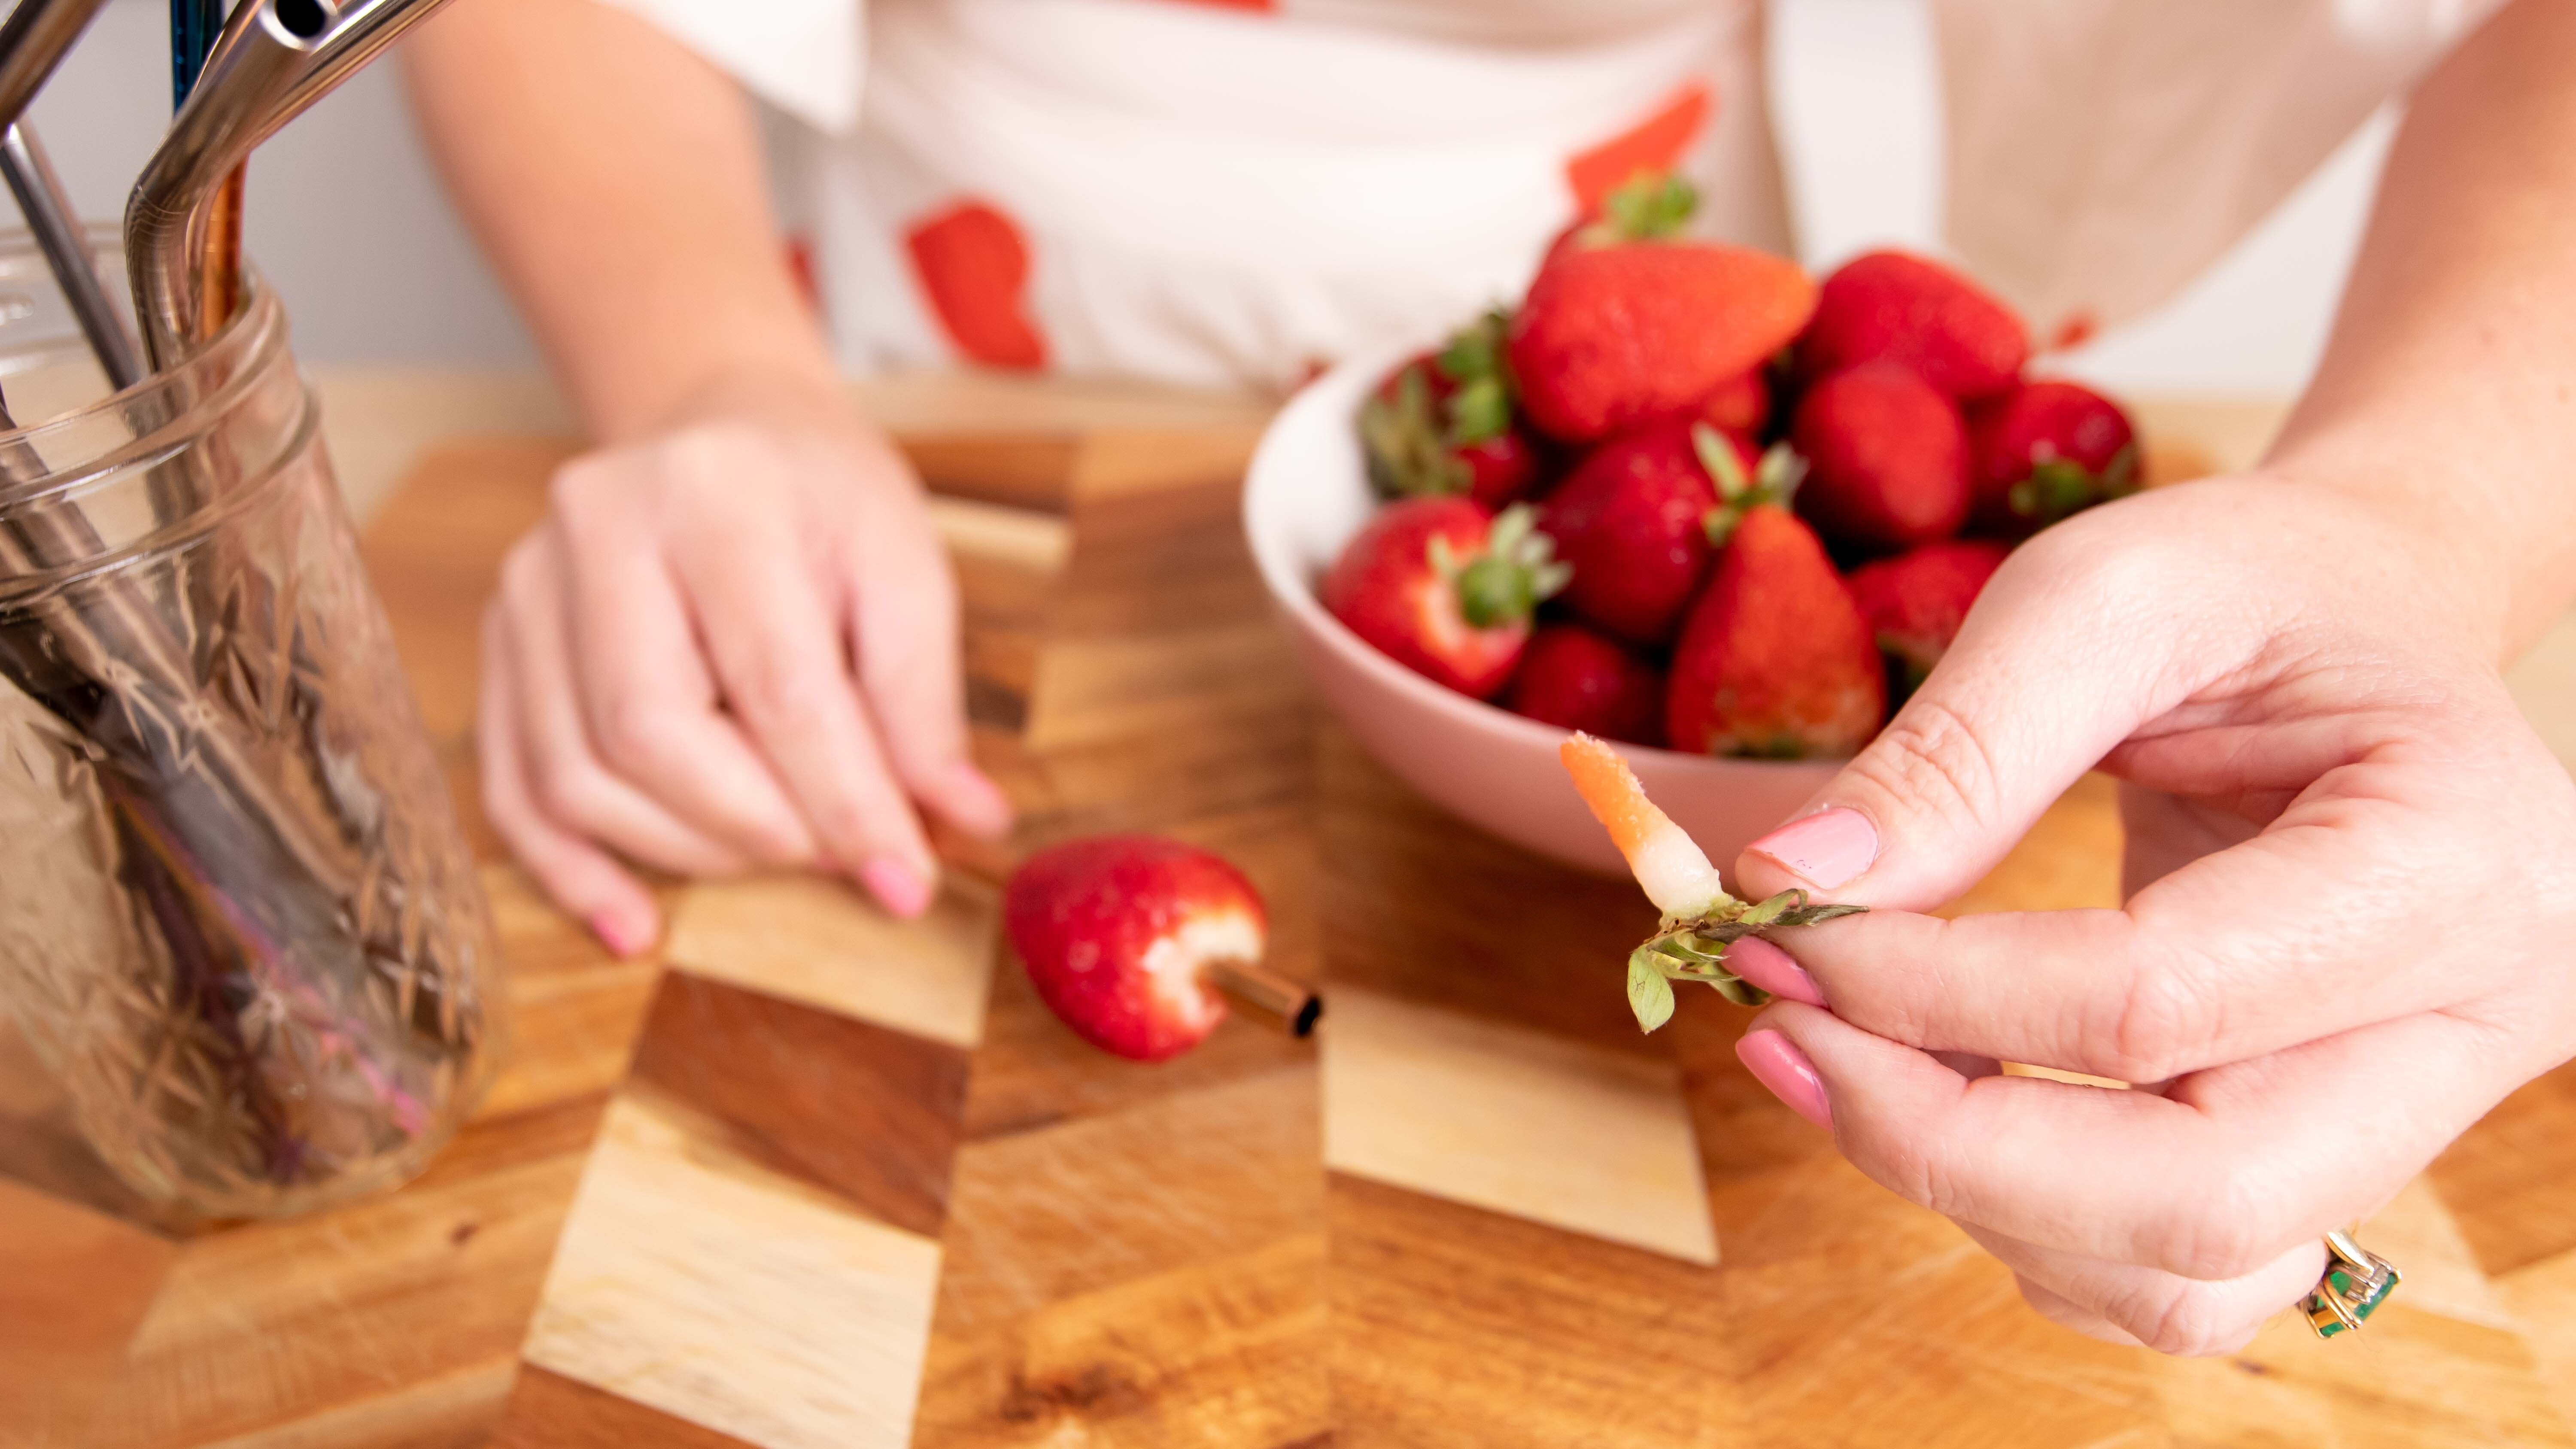 Mind-blowing strawberry hack to get rid of the green